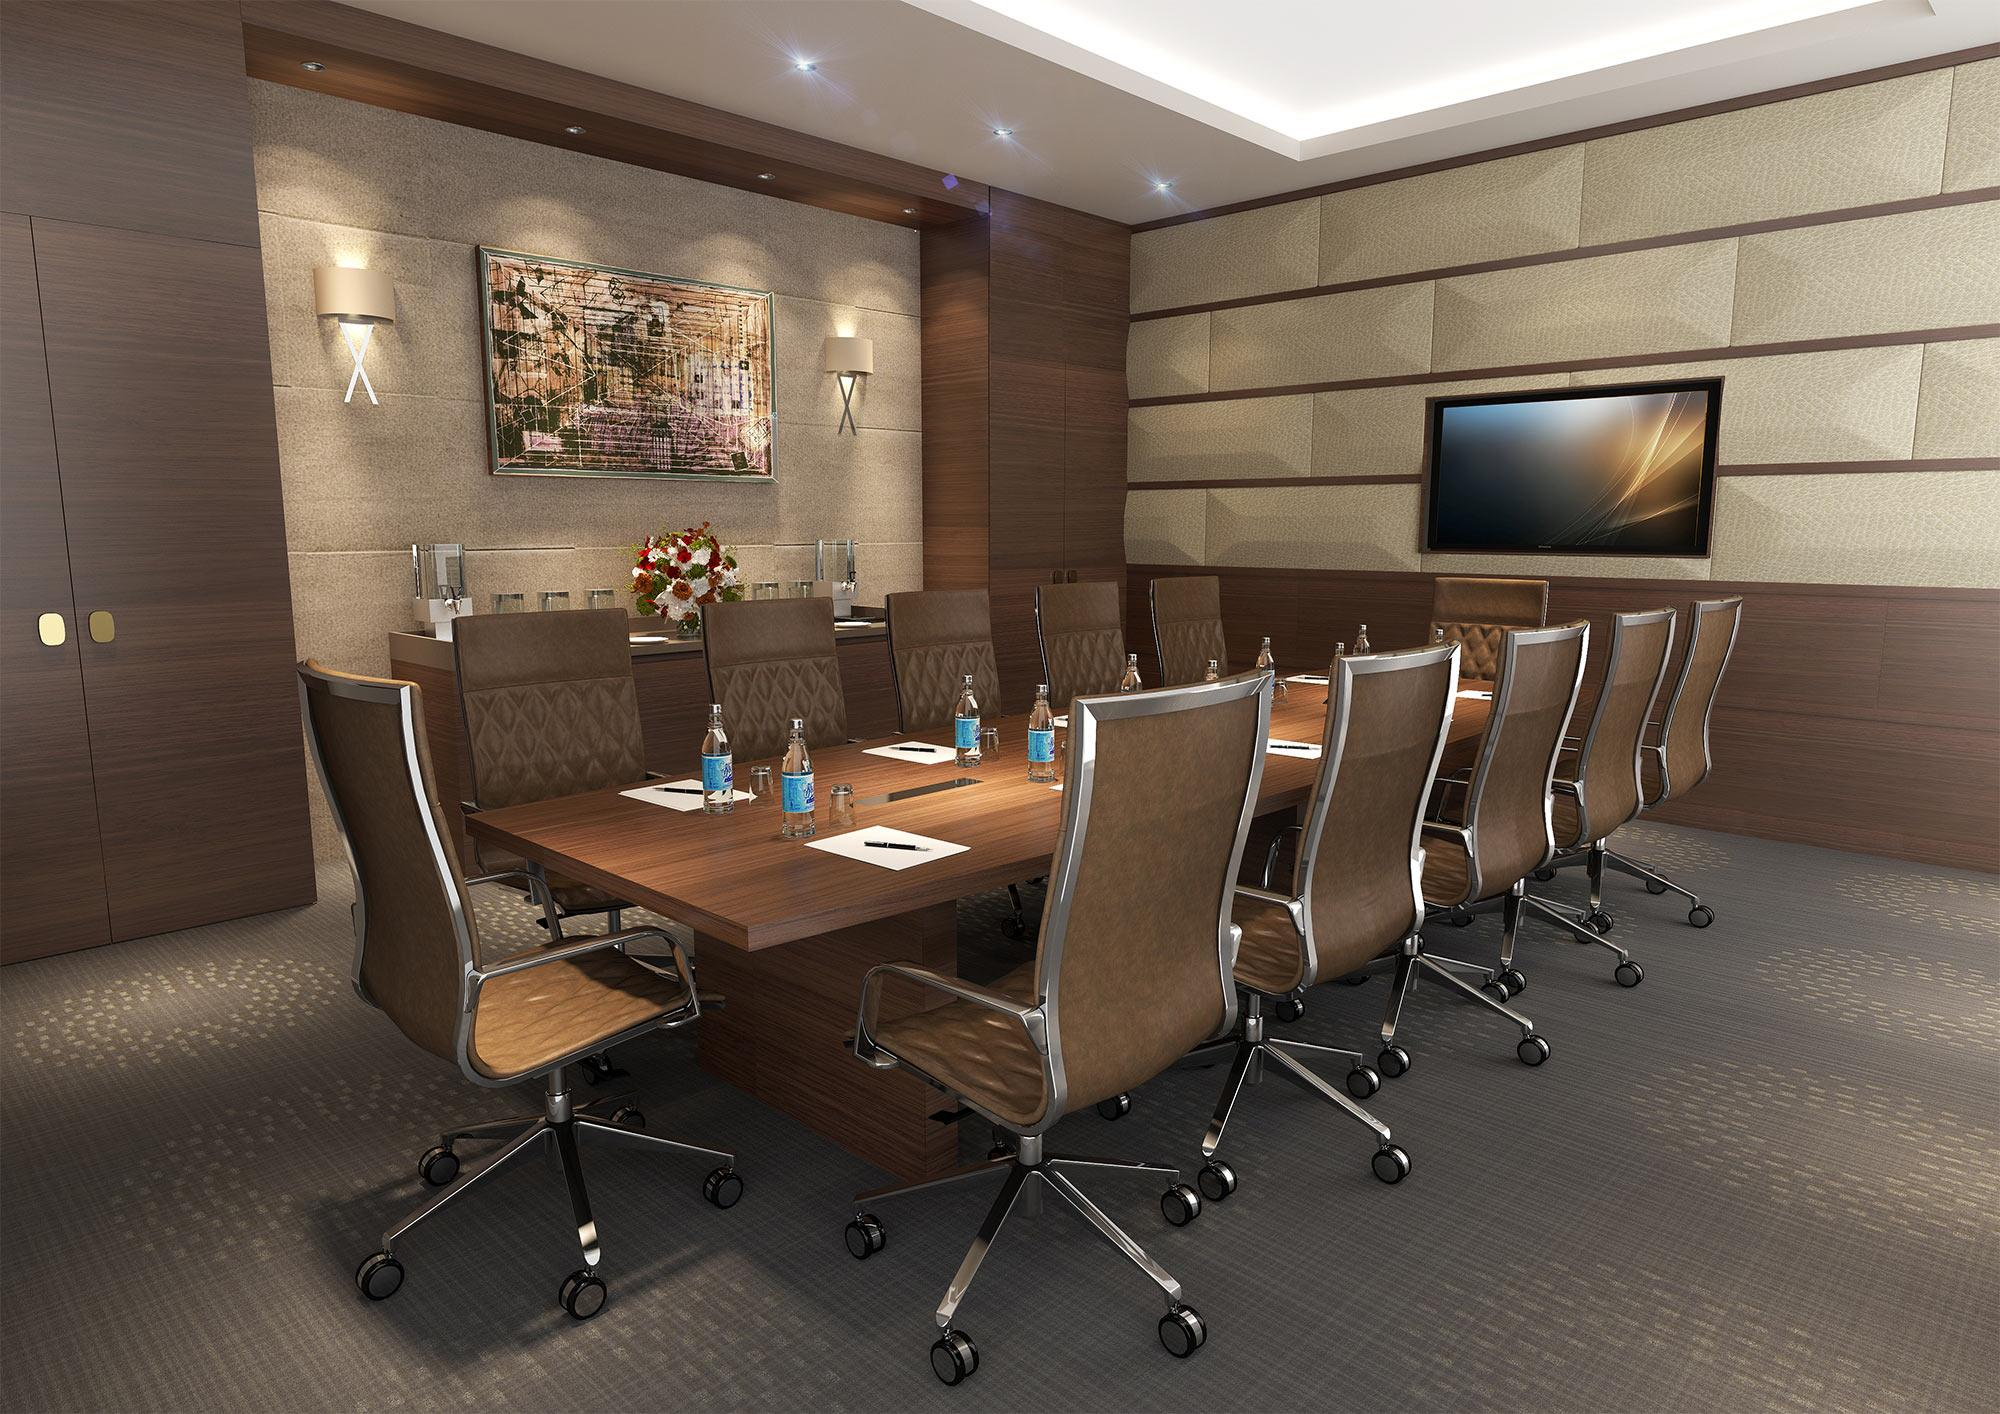 Boardroom visualisation